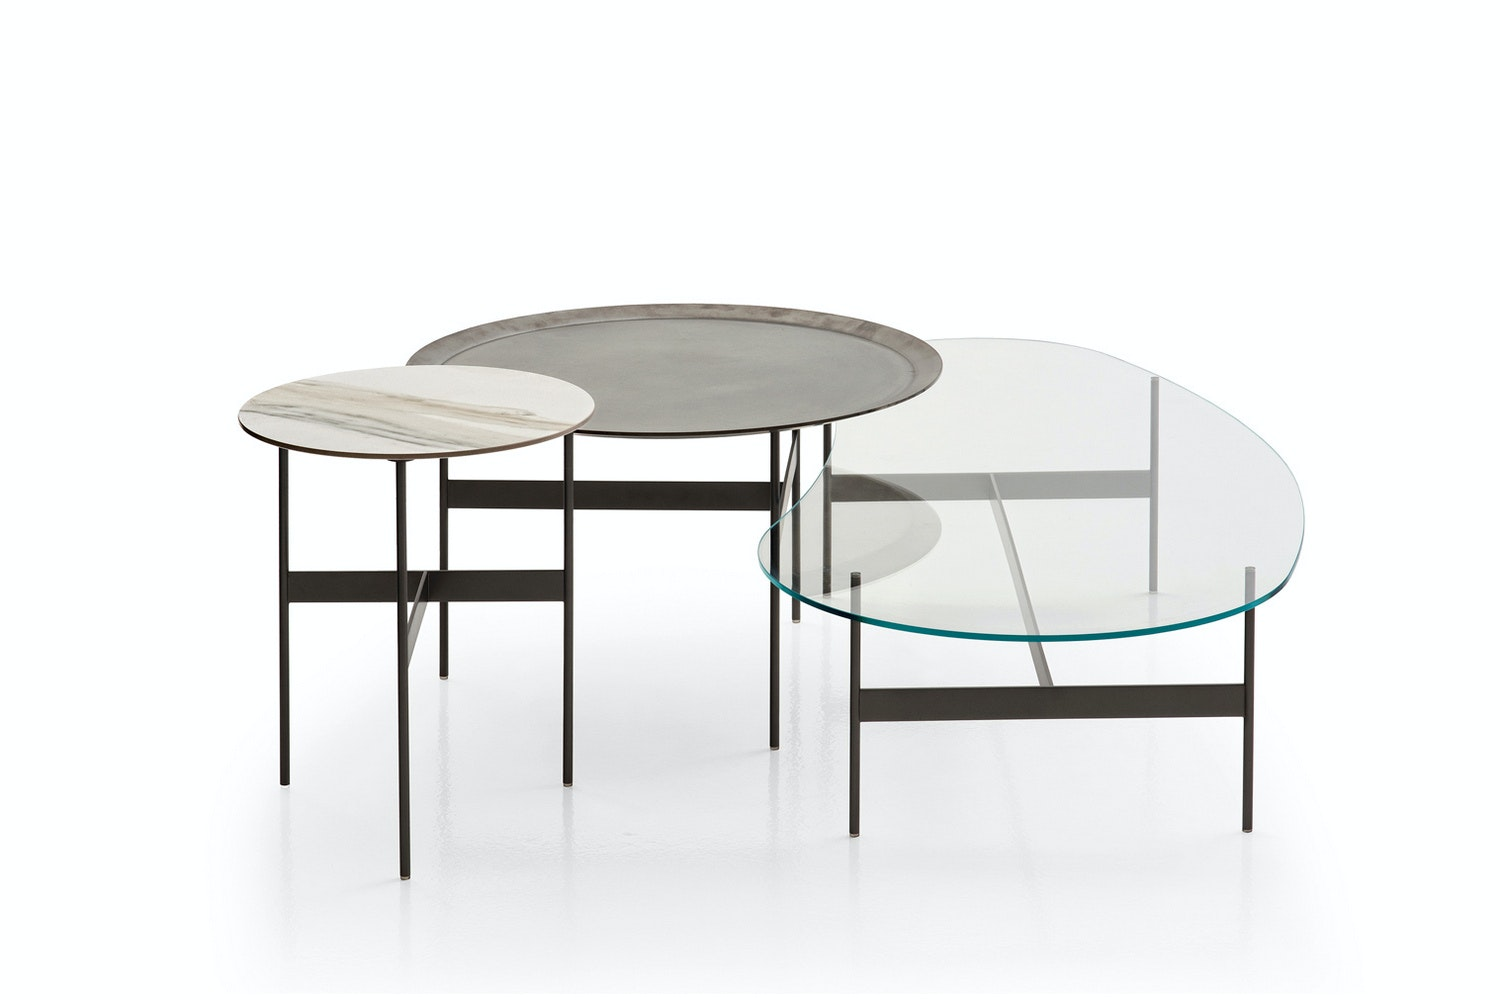 Formiche Coffee Table by Piero Lissoni for B&B Italia